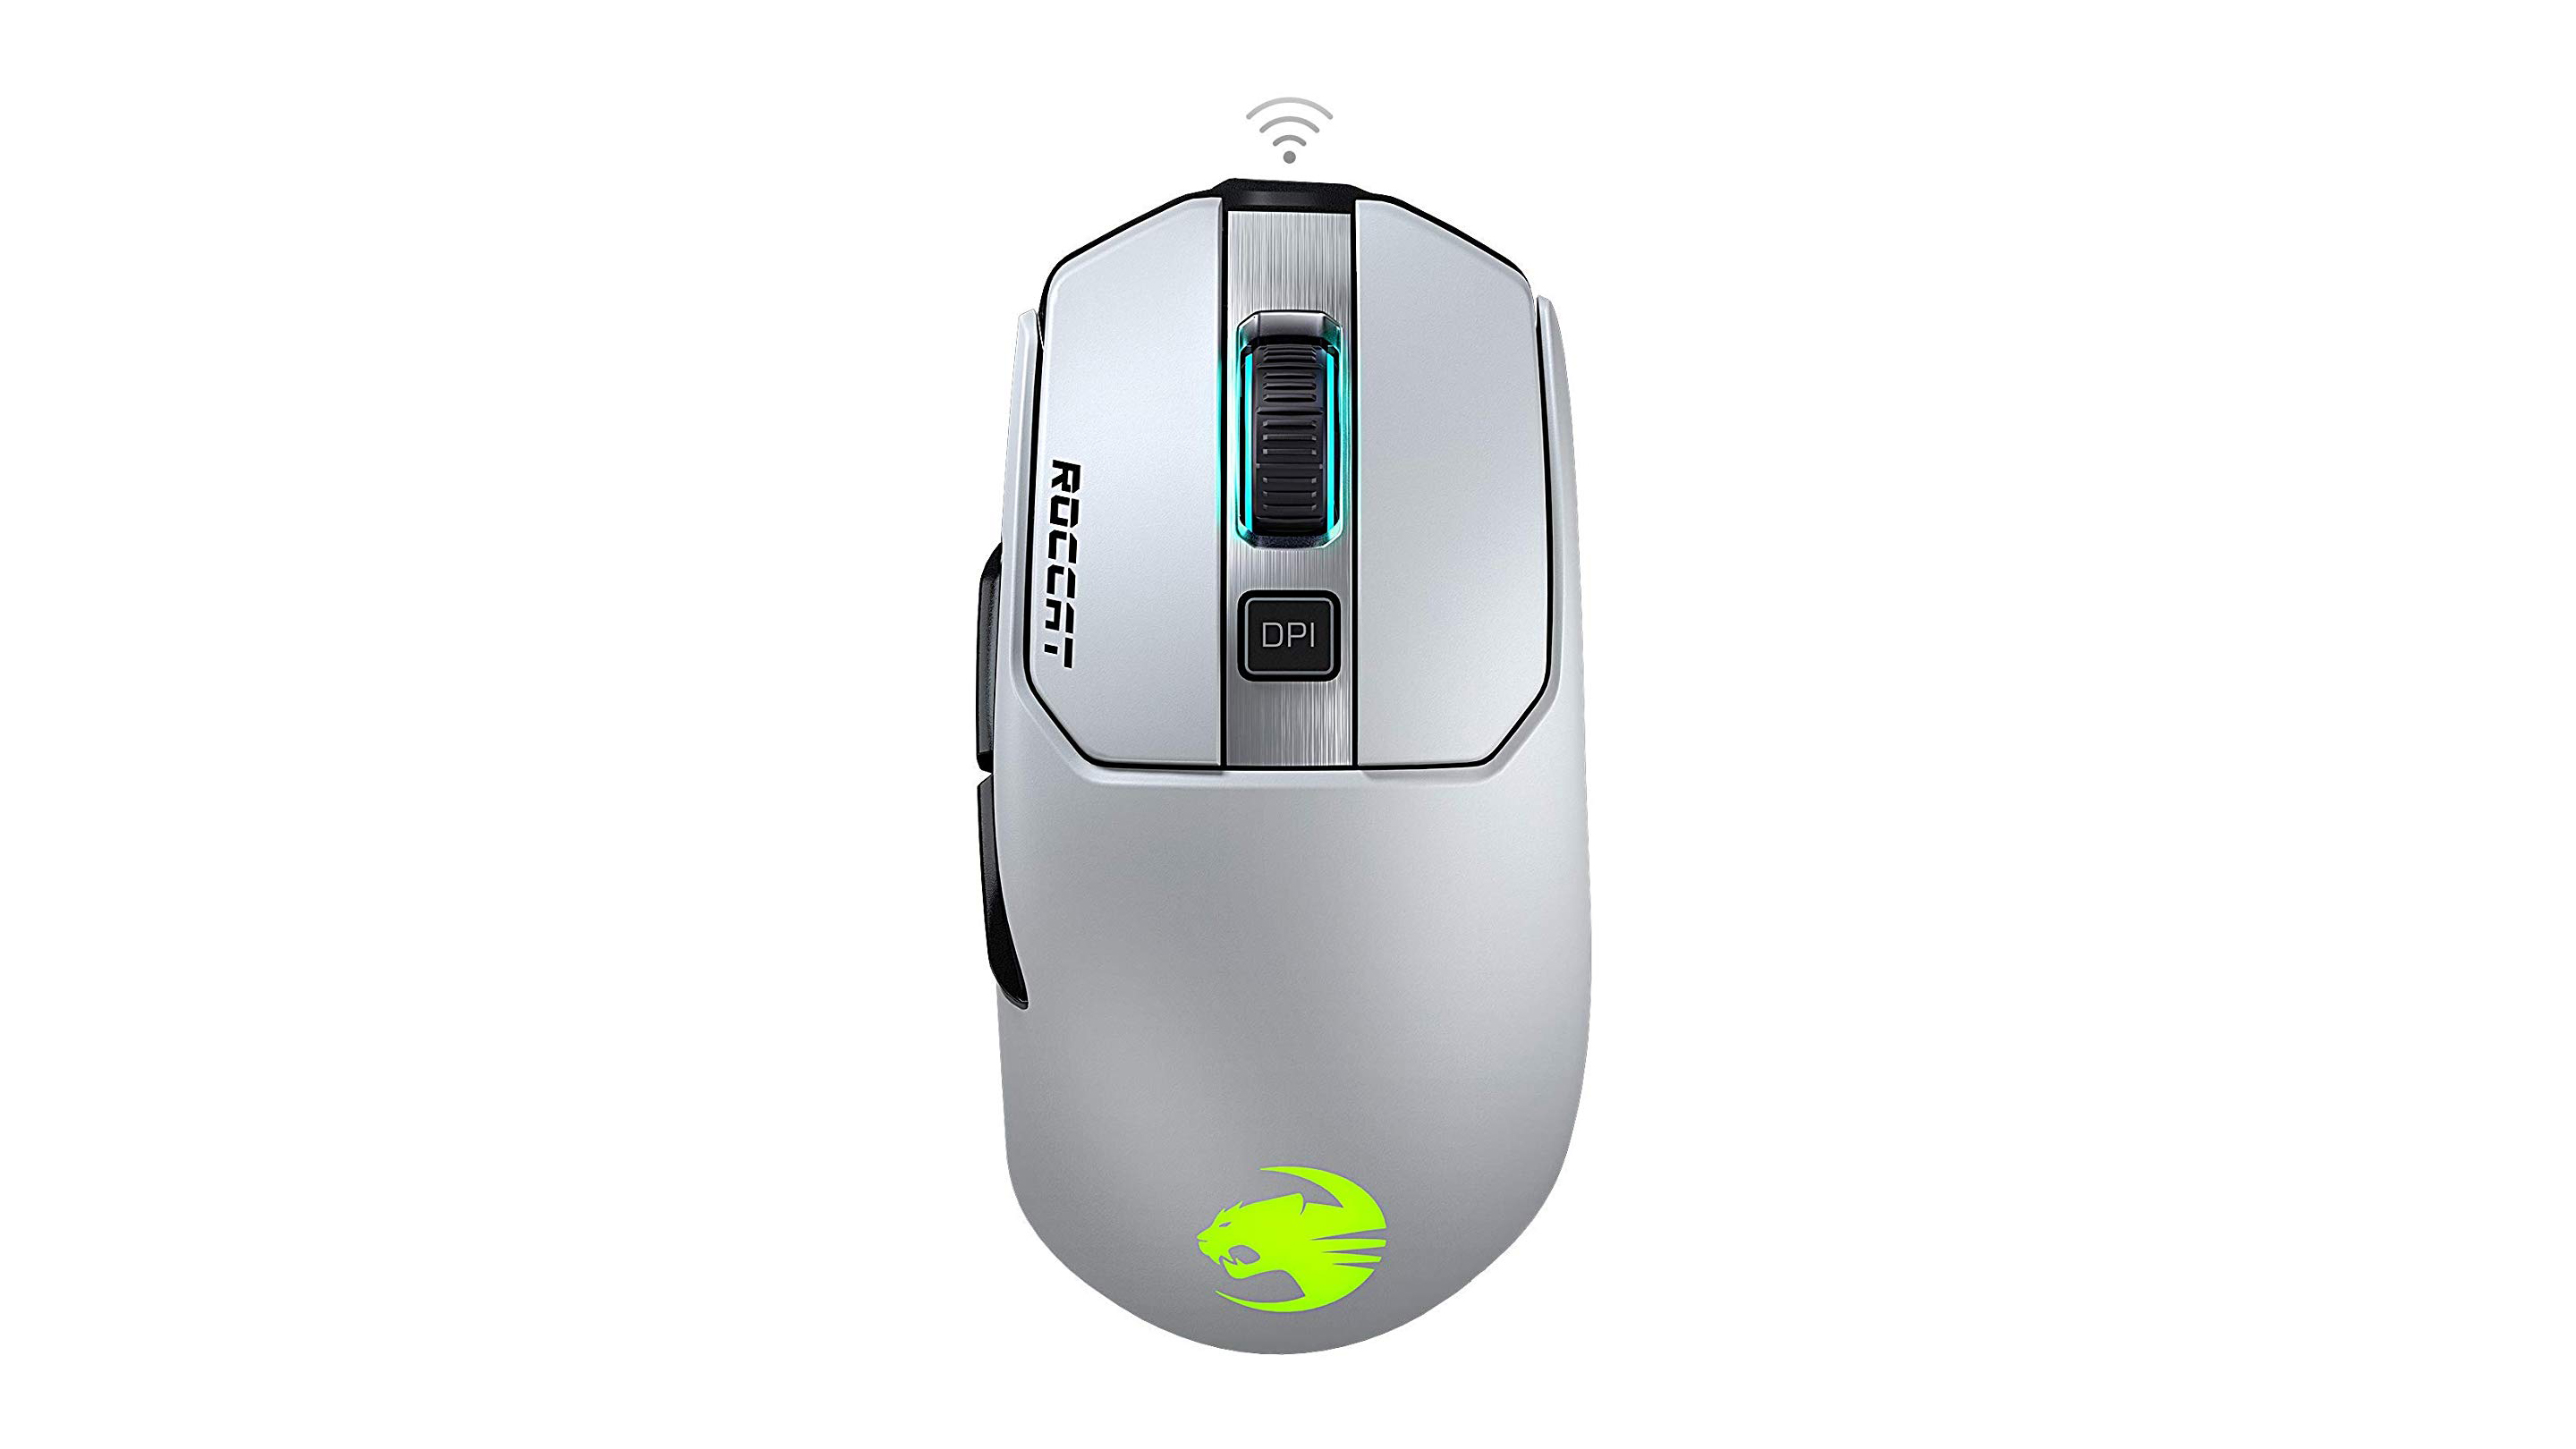 The Roccat Kain 202 AIMO is the best gaming mouse if you want something clean and minimalist.